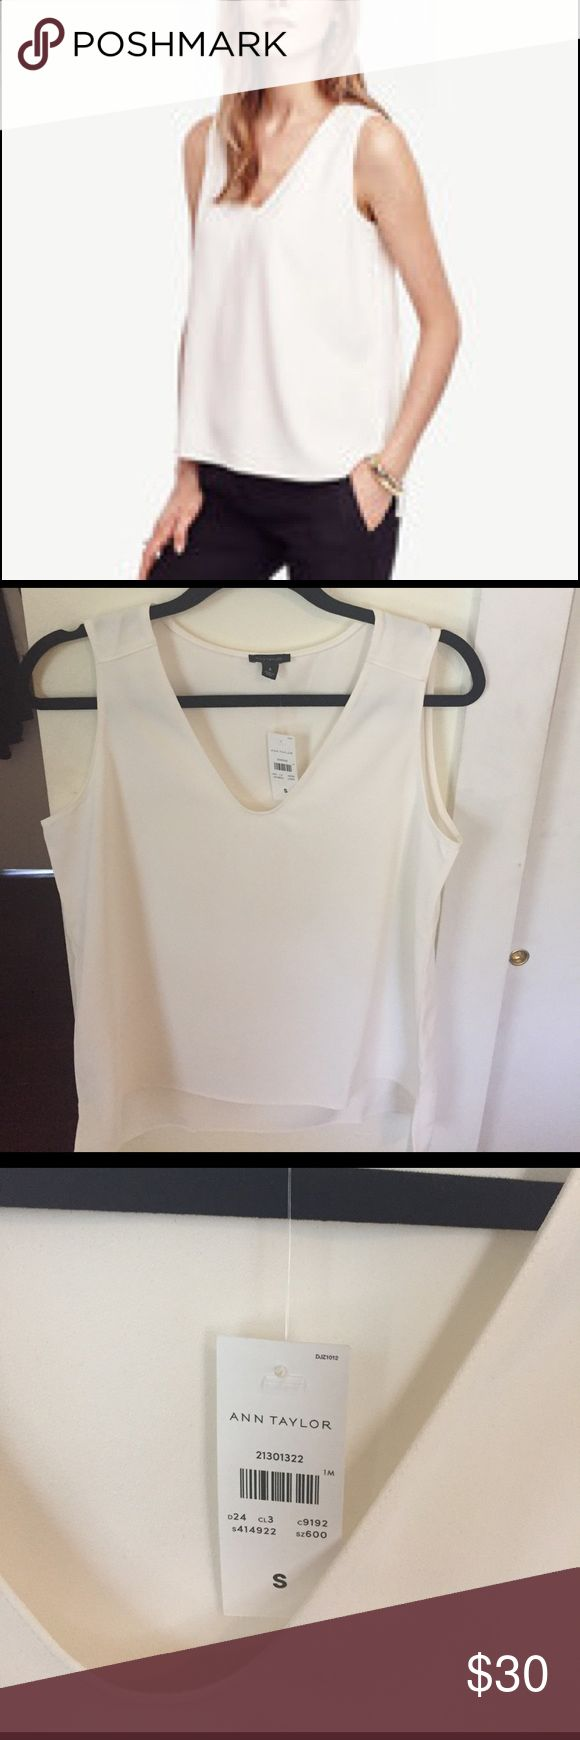 White/cCeam Ann Taylor V-Neck Shell Top (S) Beautiful new small white/cream Ann Taylor v-neck shell top. Loved it but slightly too big on me. Never worn, new with tags! Ann Taylor Tops